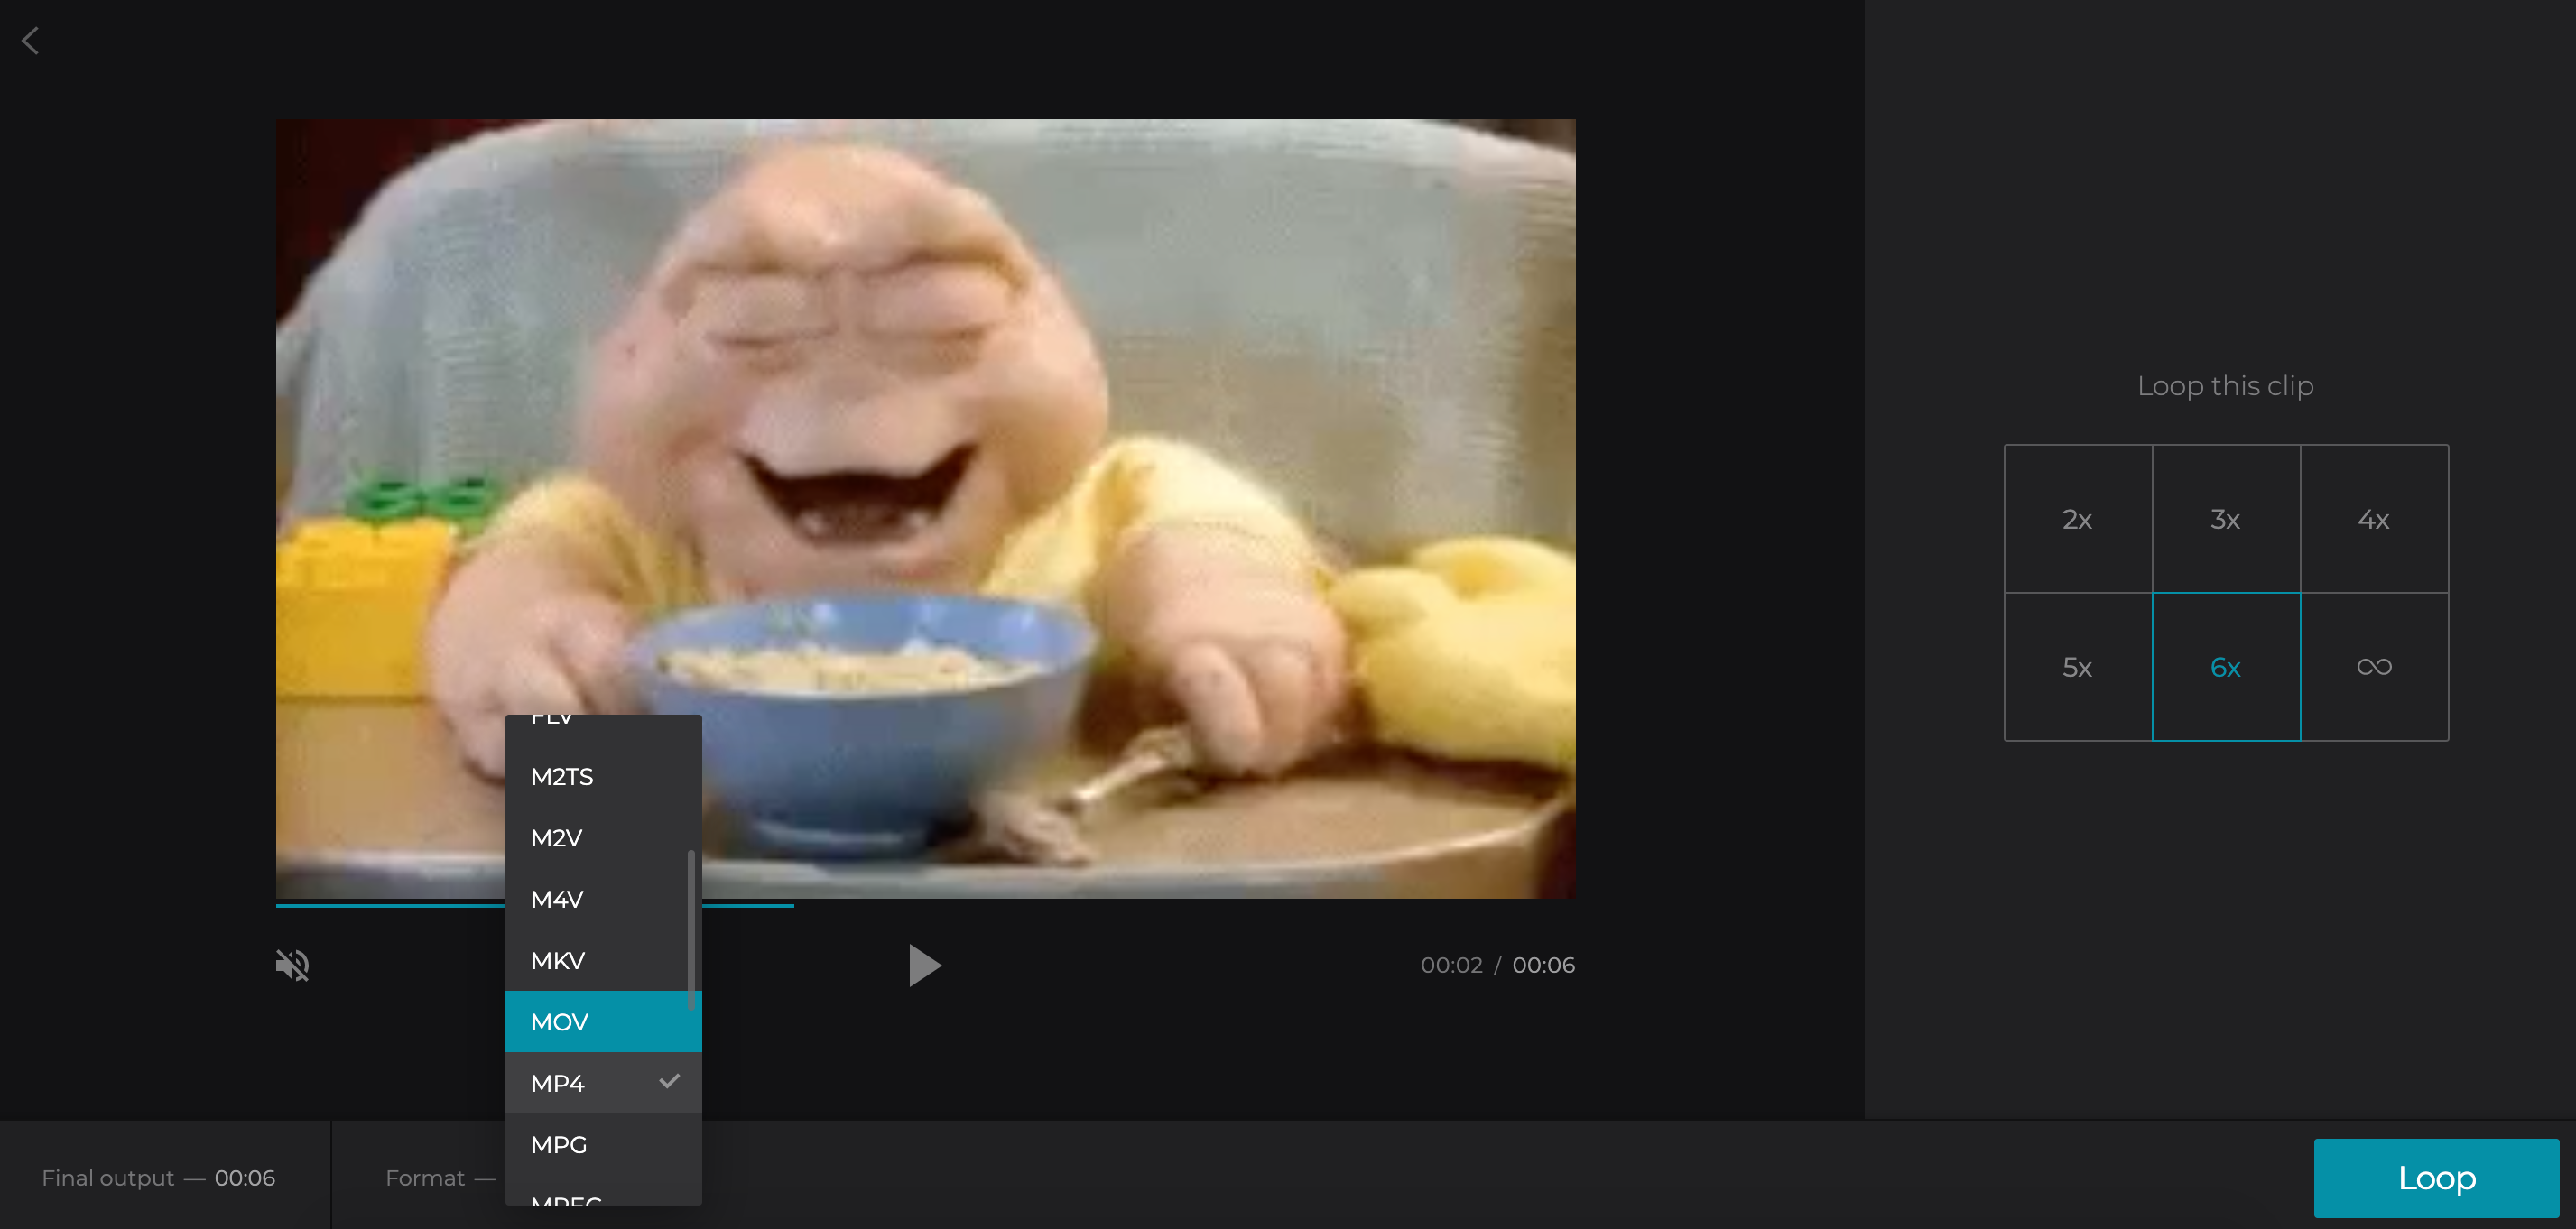 Download Twitter GIF as a video